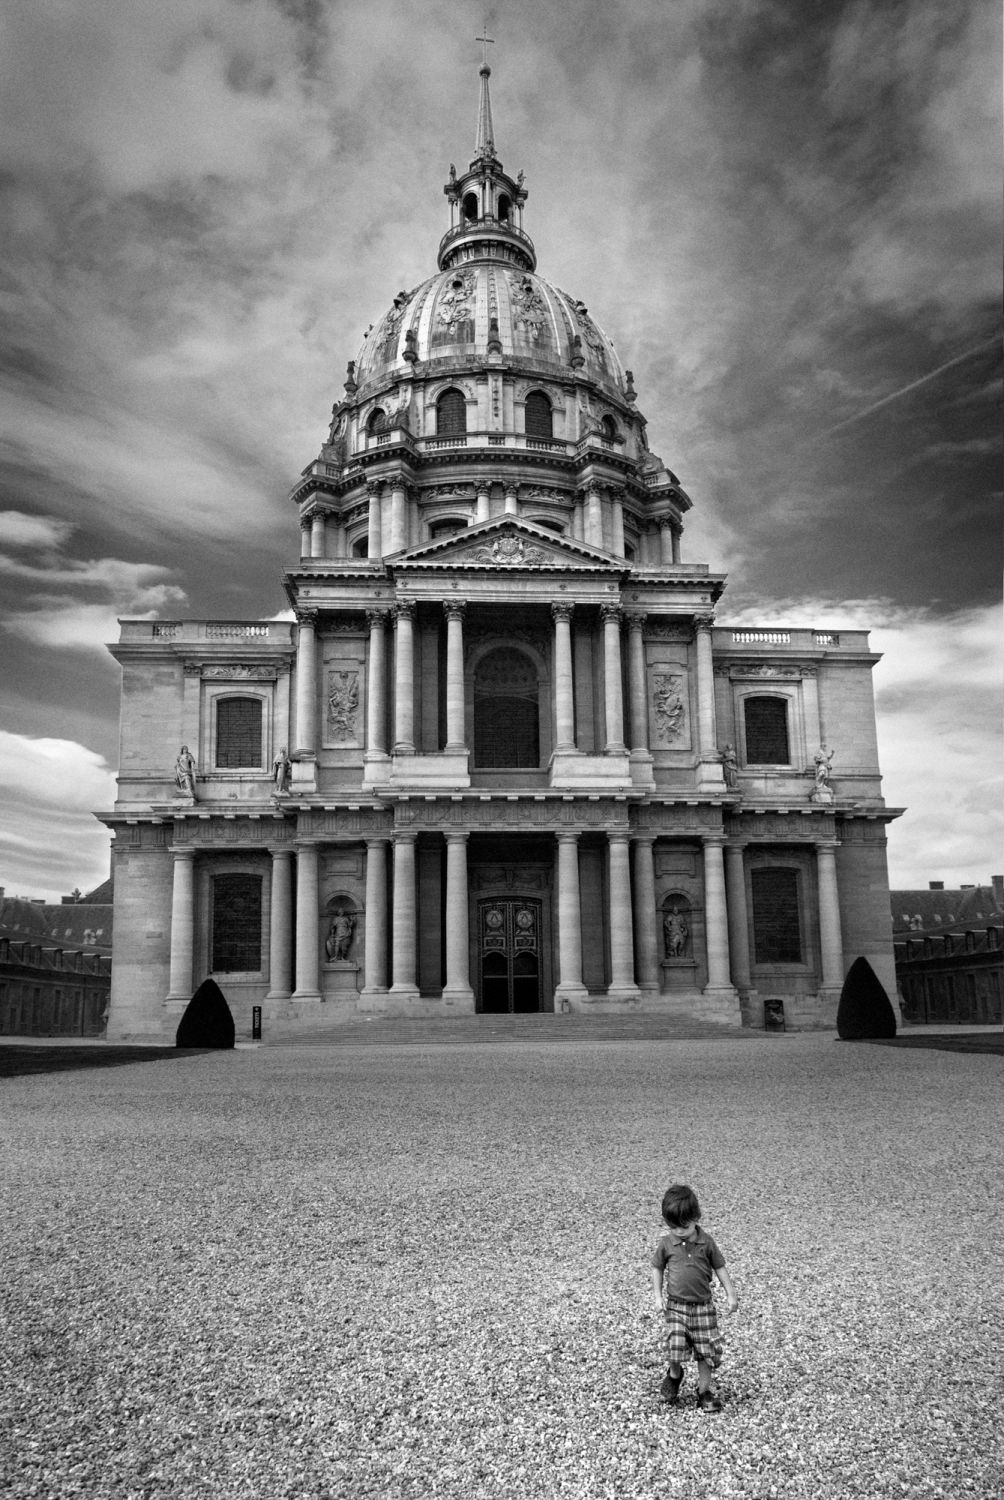 paris les invalides et les petits graviers christophe lecoq. Black Bedroom Furniture Sets. Home Design Ideas